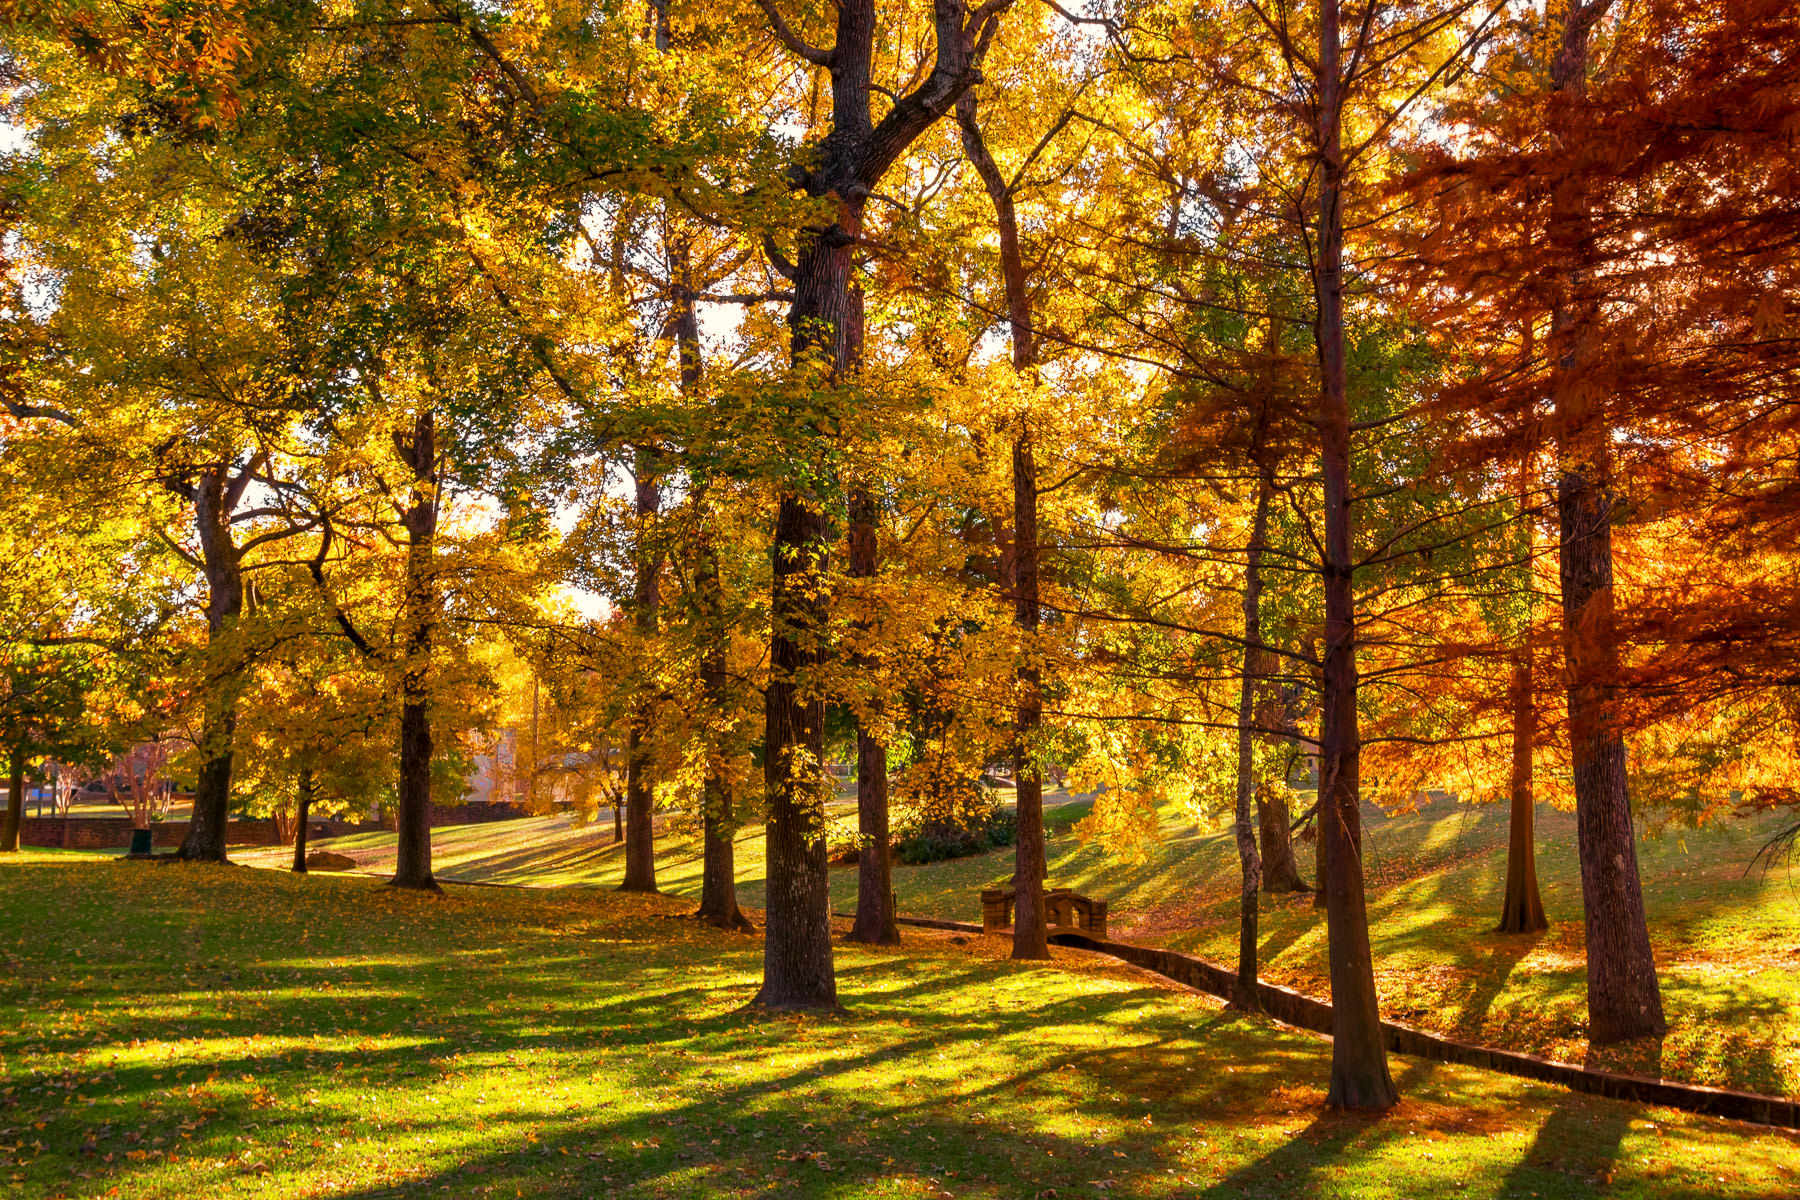 Golden light illuminates the yellows and reds of trees in Tyler, Texas' Bergfeld Park.